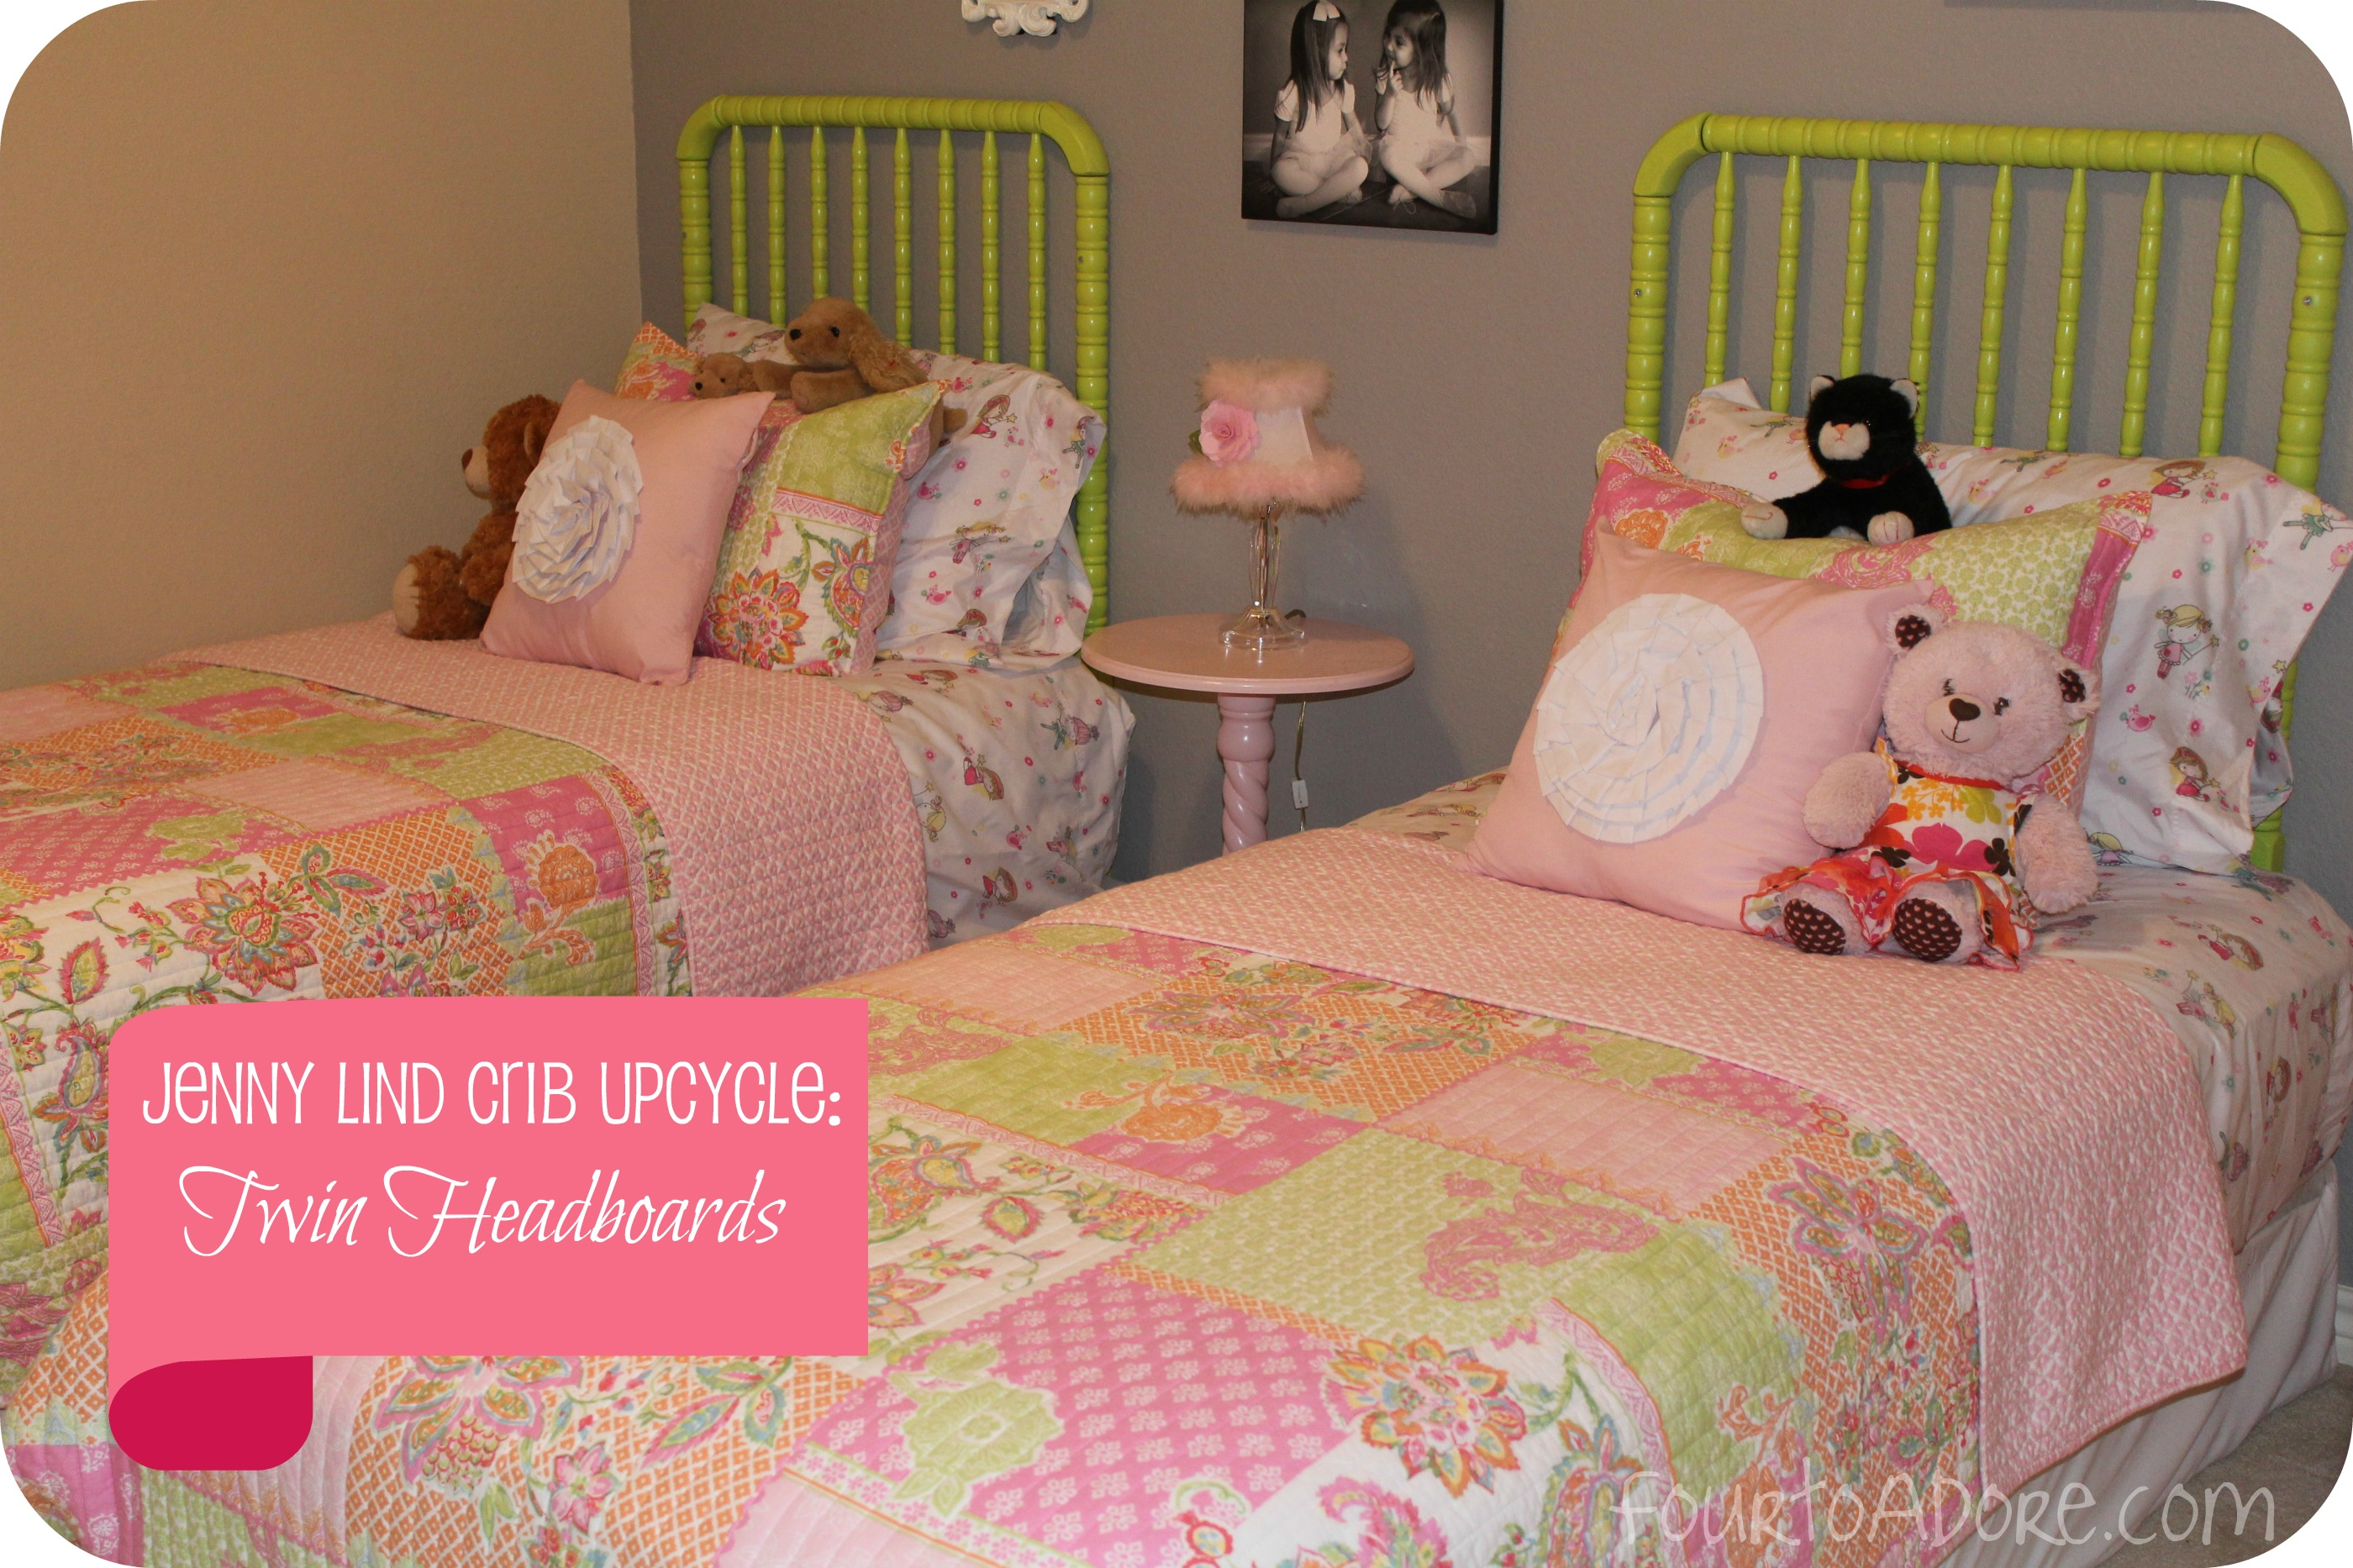 Jenny Lind Crib Upcycle: Twin Headboards